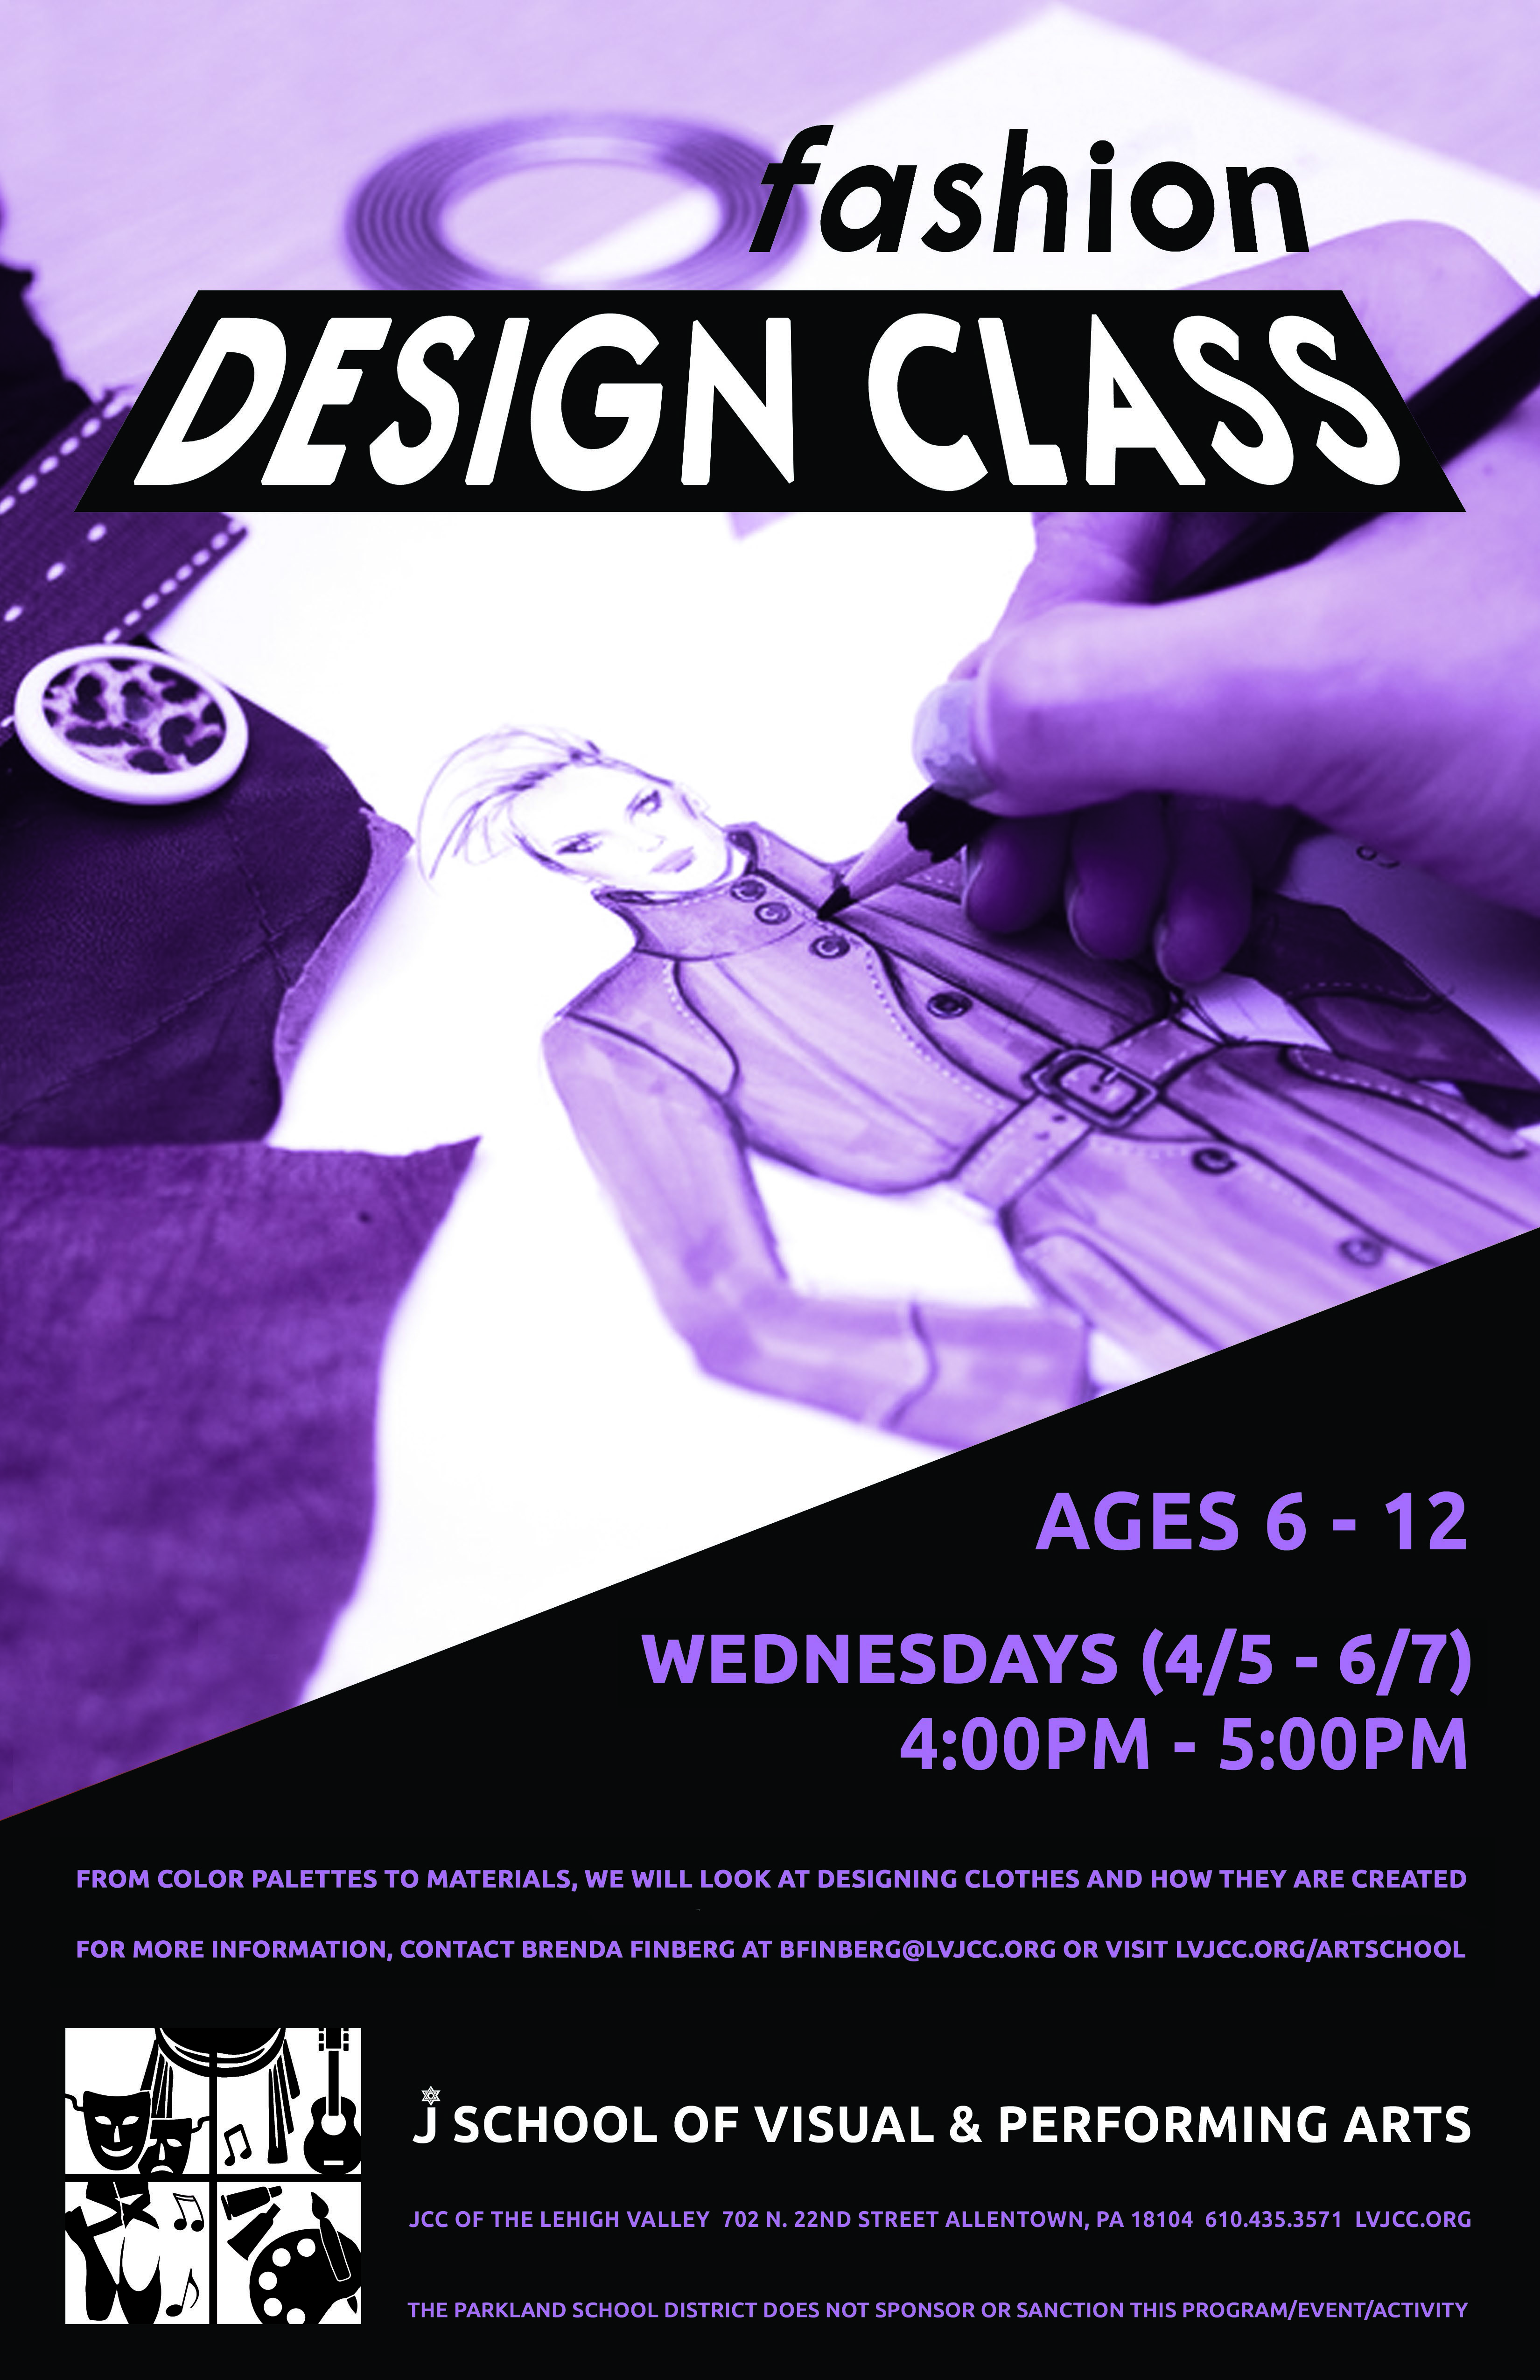 Poster design class 12 - Take Your Creativity To A New Level And Learn To Create A Wardrobe Look All Your Own From Color Palettes To Materials We Will Look At Designing Clothes